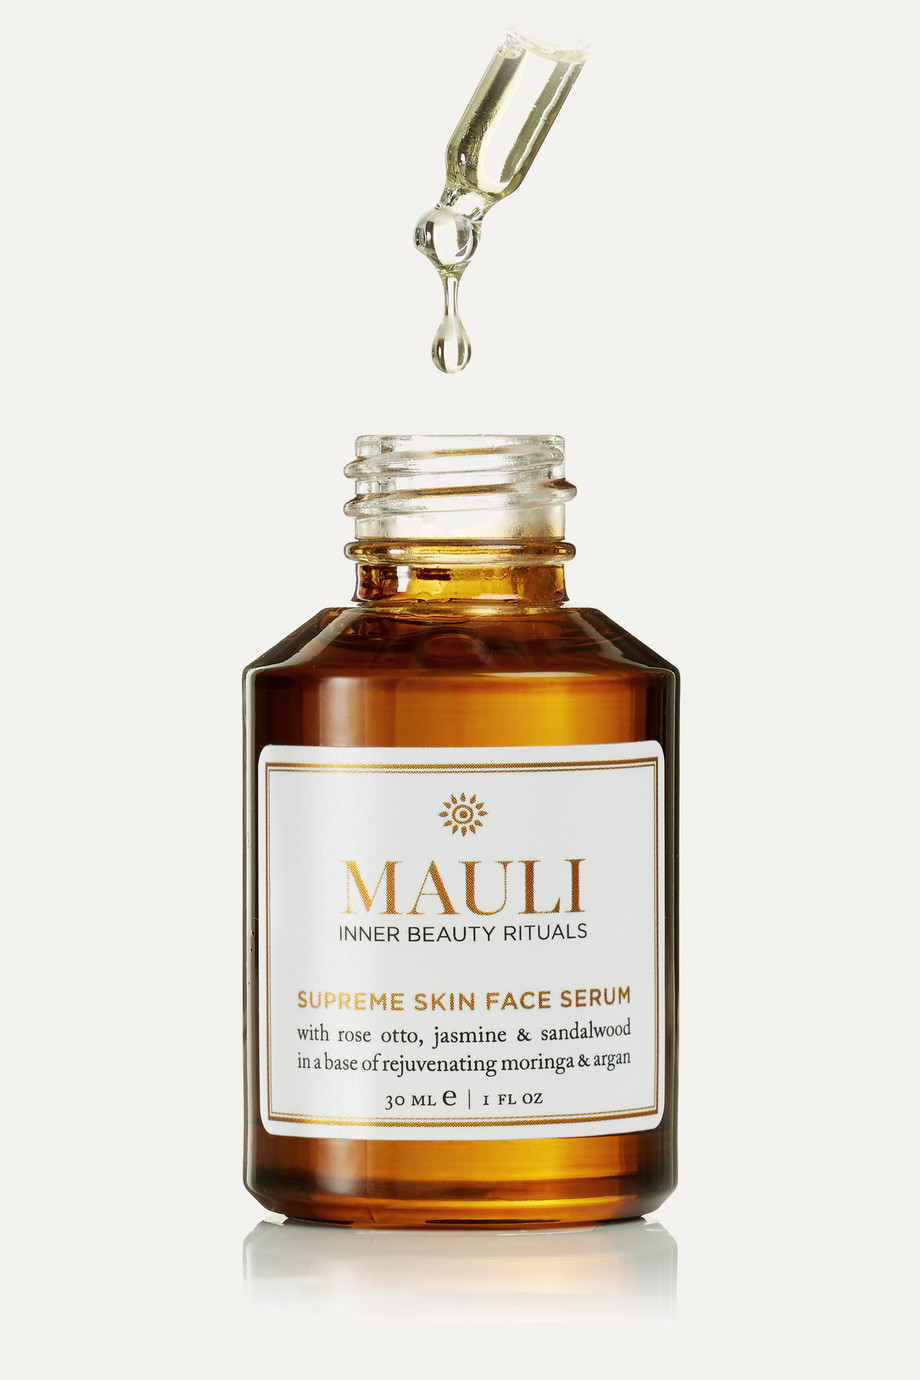 Mauli Rituals Supreme Skin Face Serum, 30ml